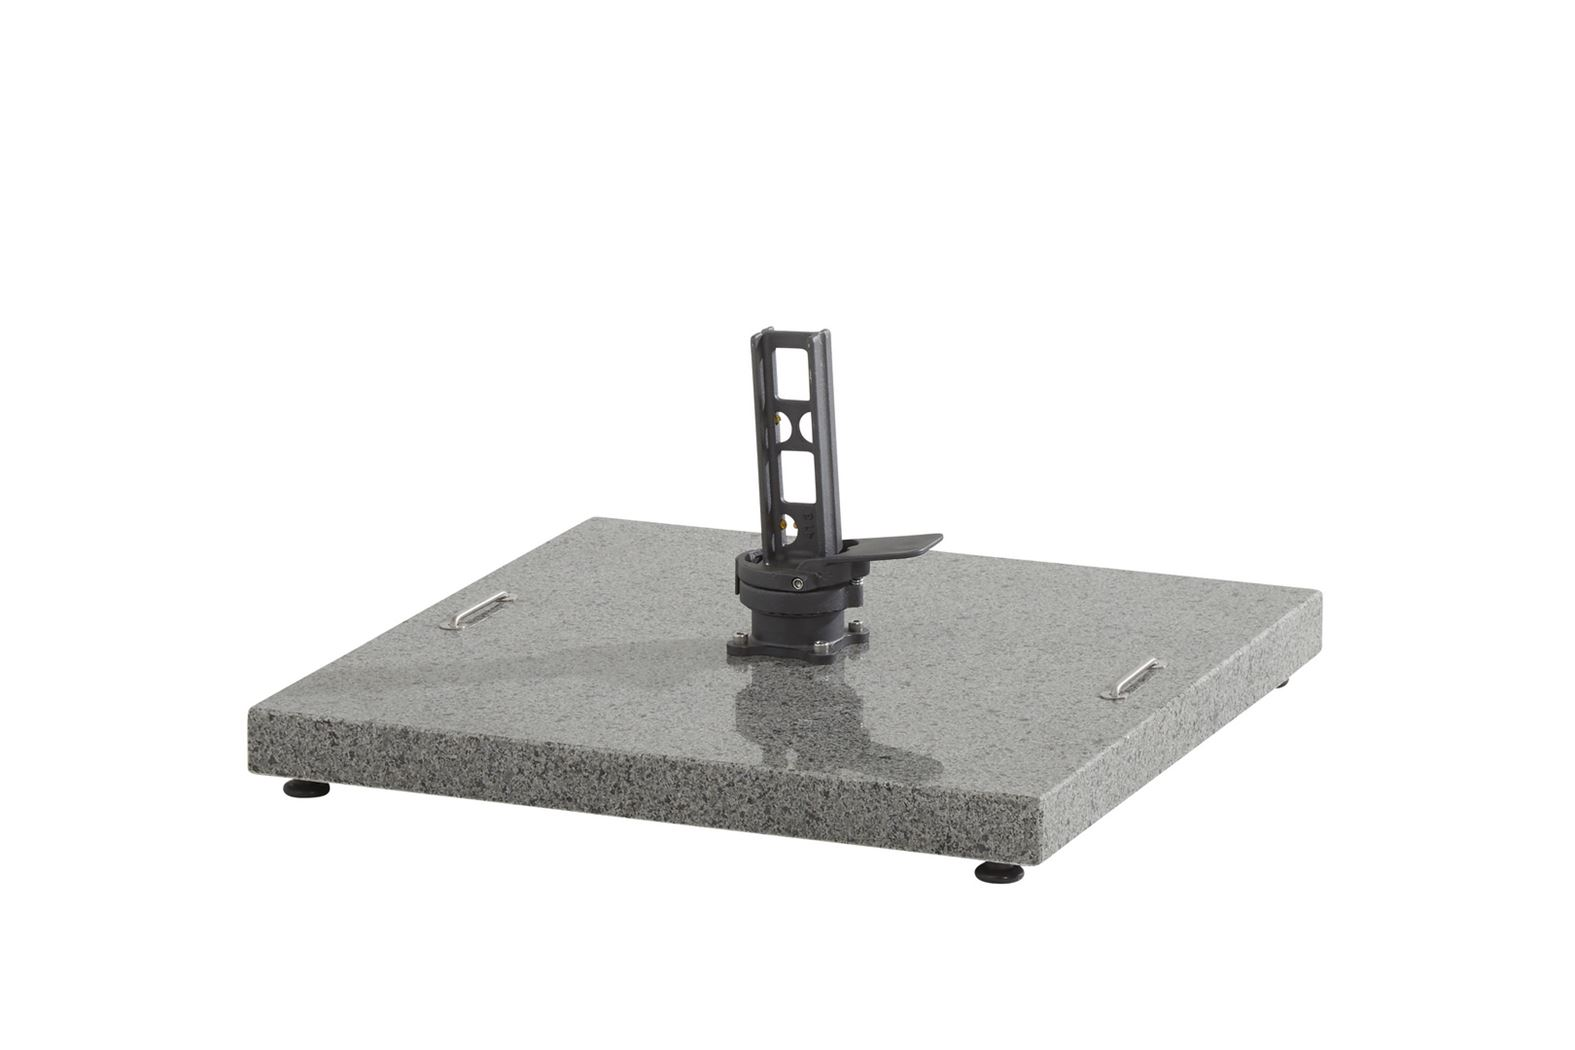 4so horizon granite base anthracite (84 kg) with holes for wheels